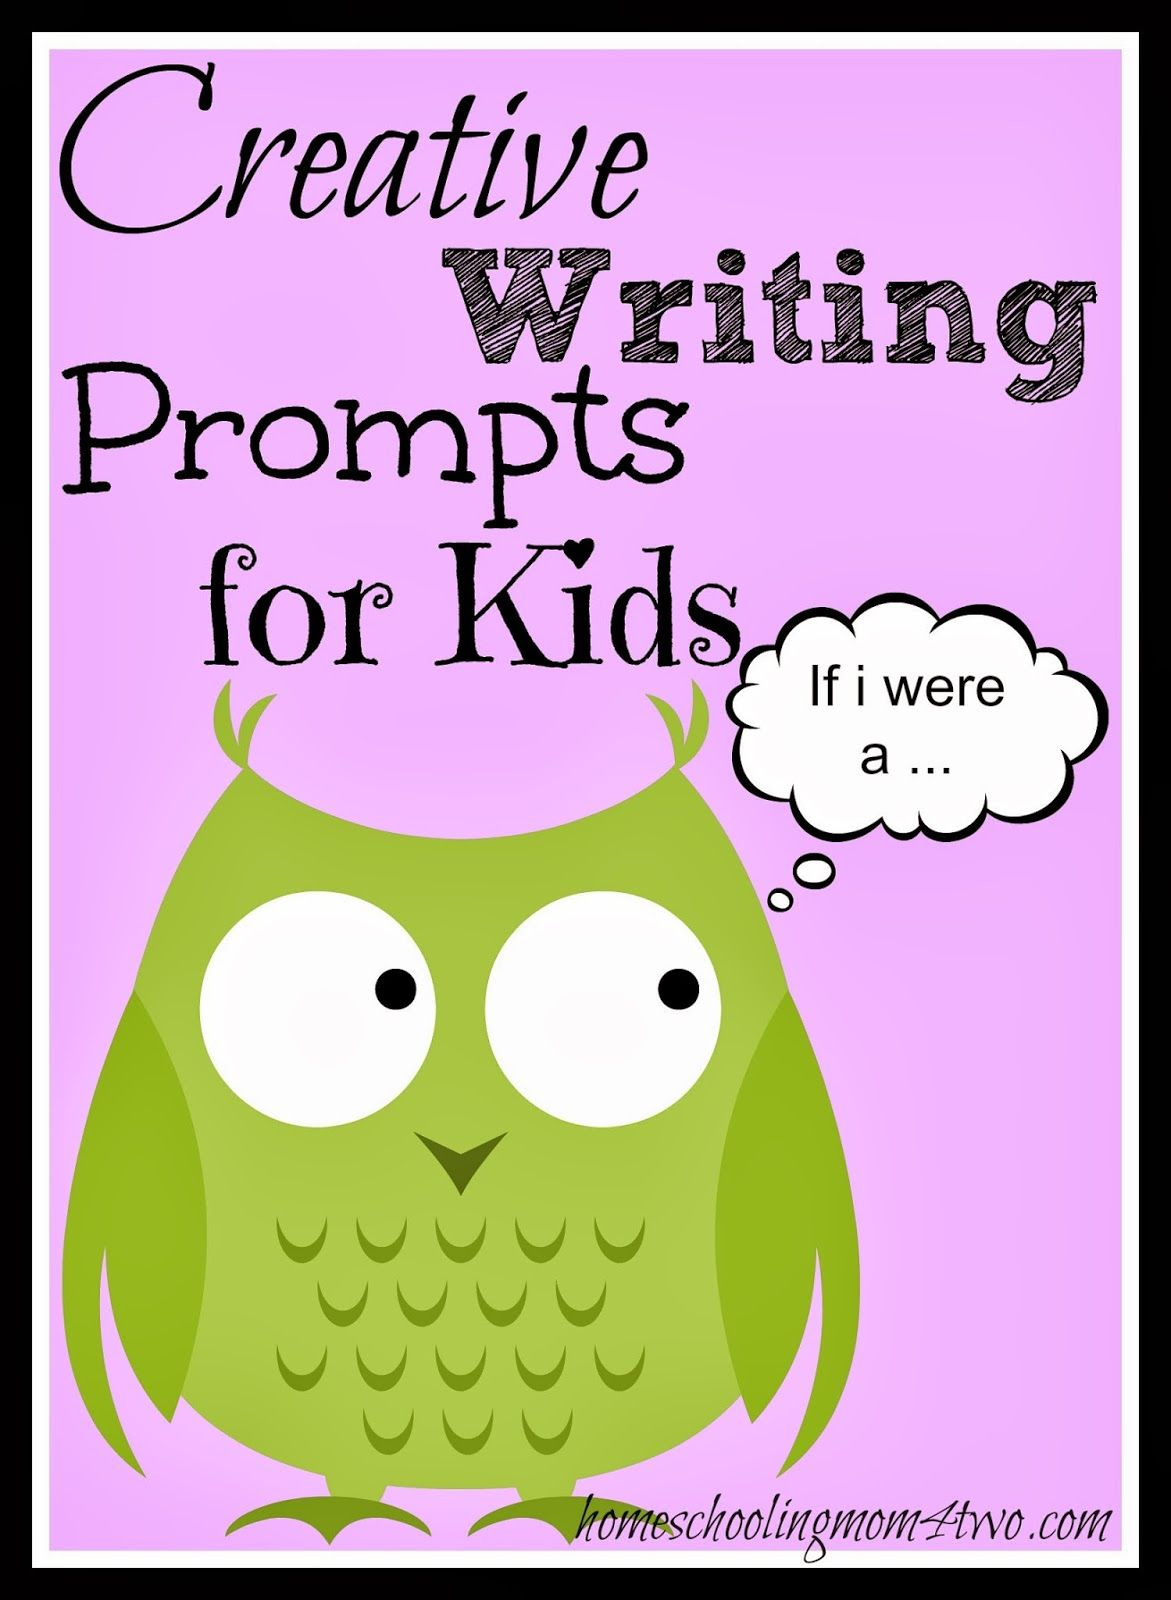 Creative writing prompts for kids creative writing prompts creative writing prompts for kids homeschooling mom 4 two fandeluxe Images